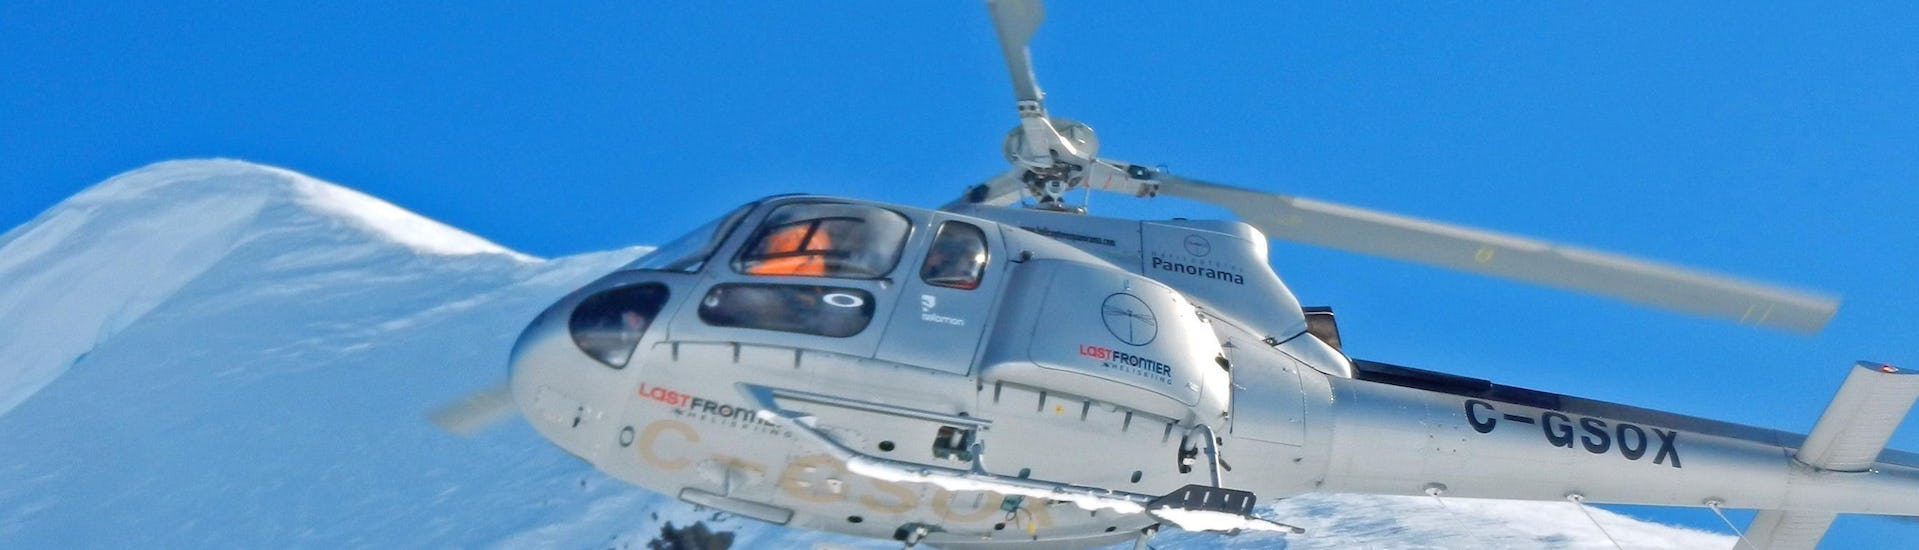 A helicopter is soaring over the snowy peaks in the ski resort of Sölden getting ready for the activity Heli Skiing Private - Mehlsack or Schneetäli organized by the ski school Alpinist in the ski resort of Sölden.